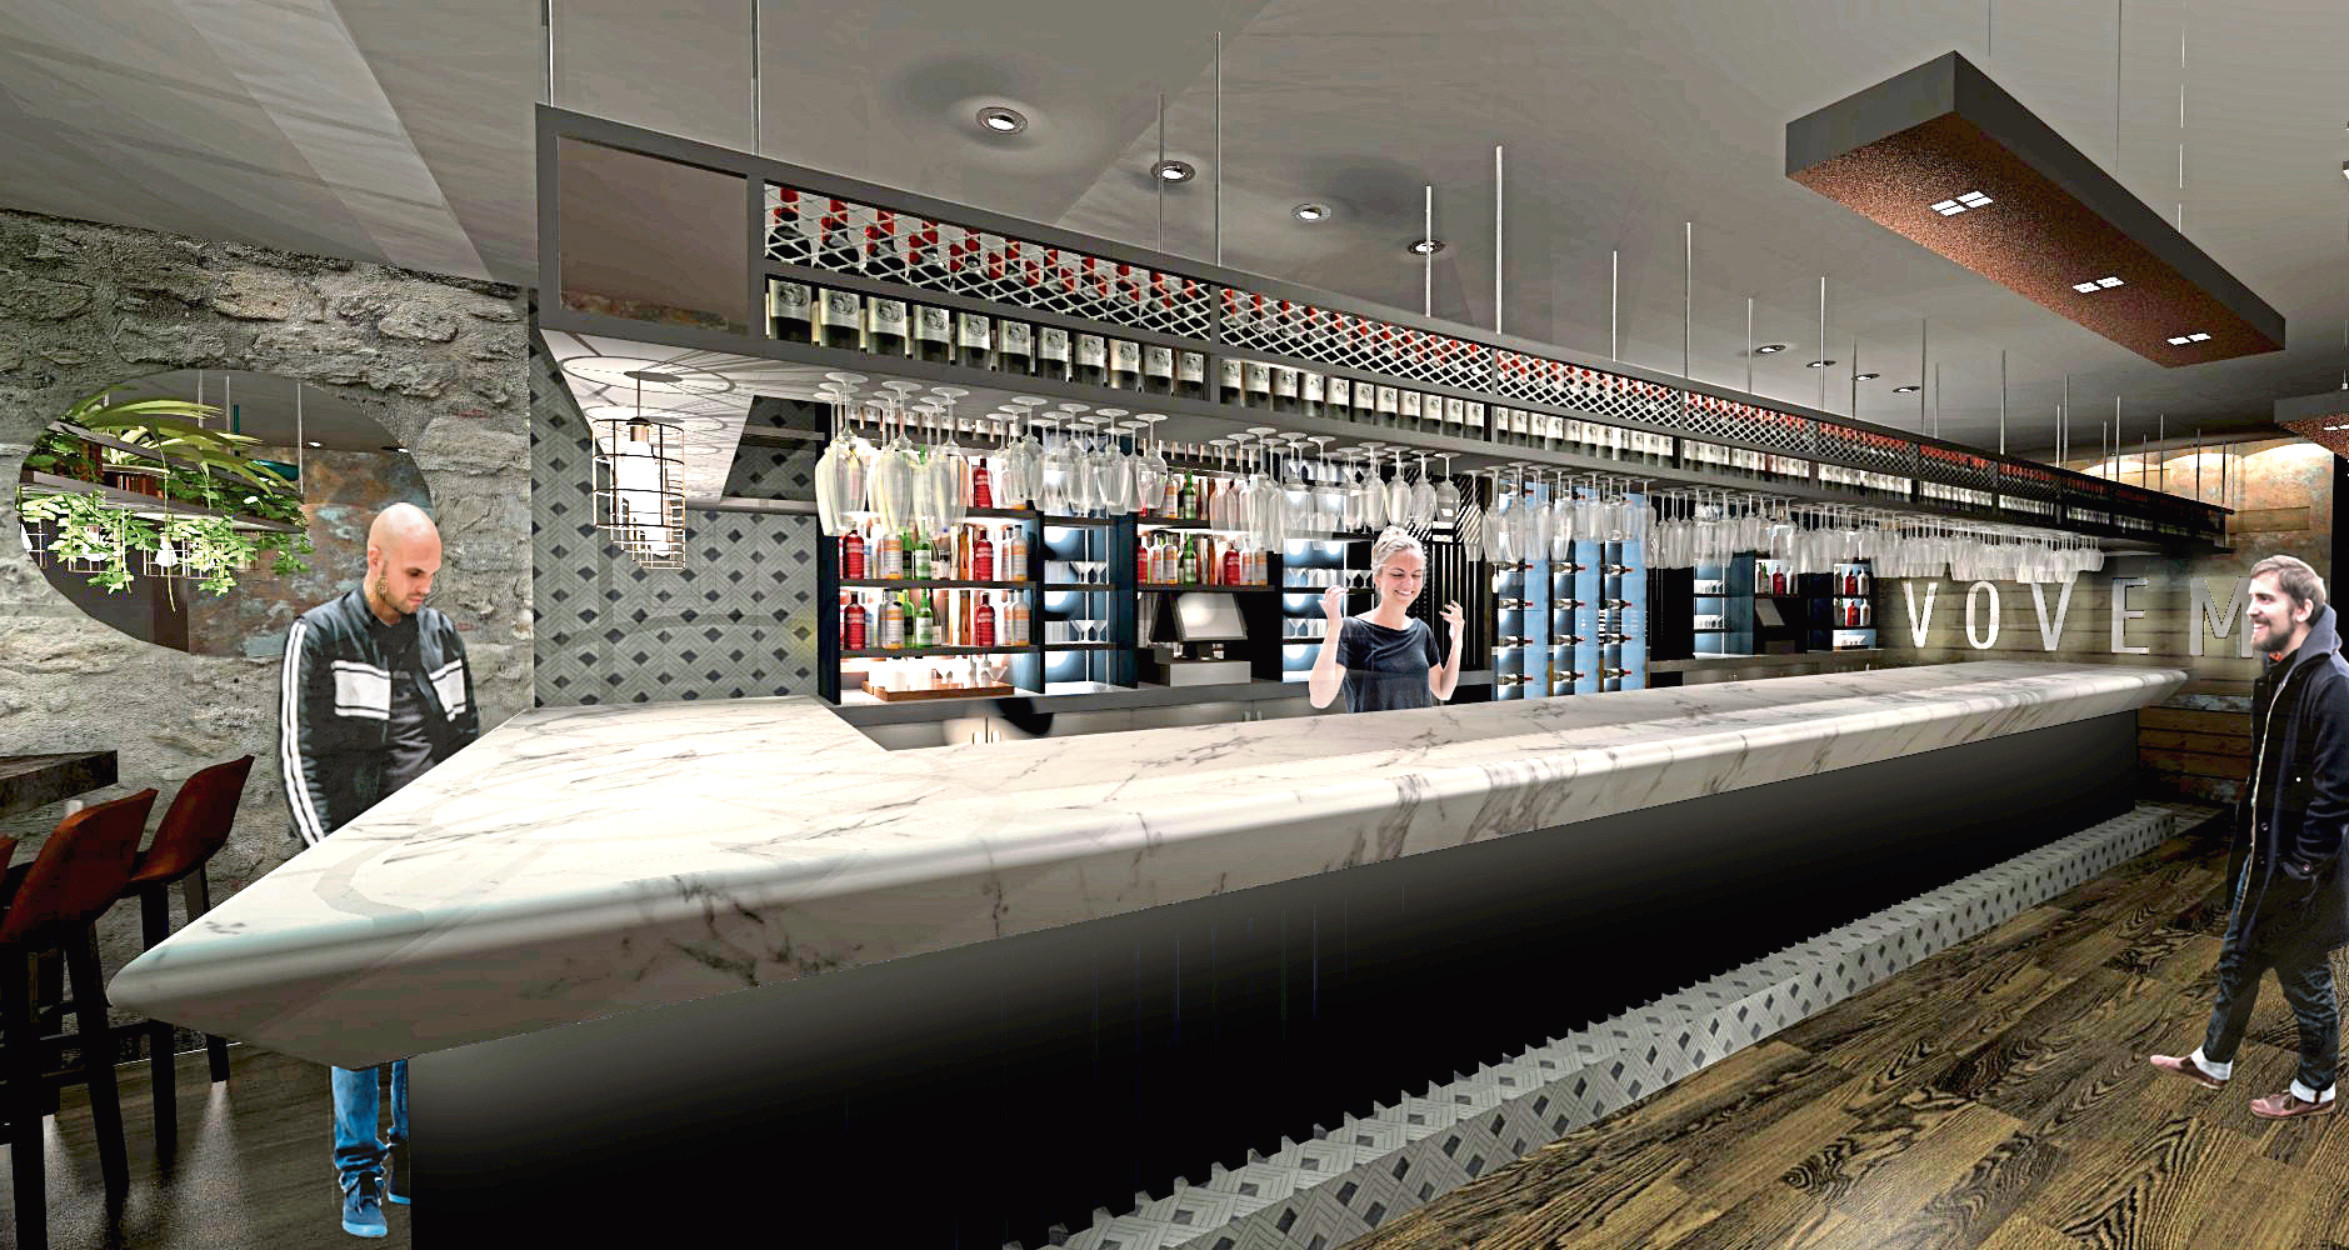 An artist impression of the bar